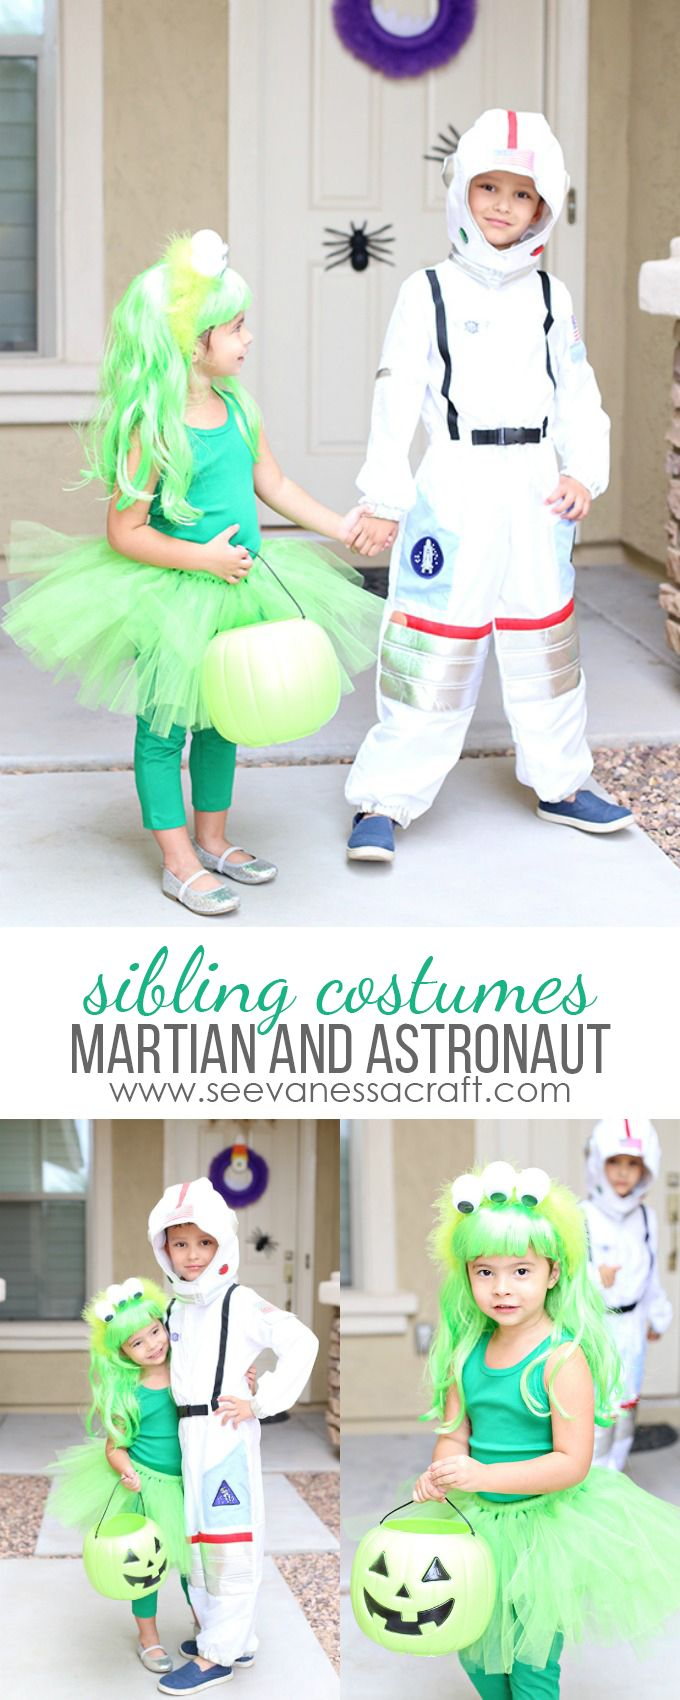 Halloween martian and astronaut sibling costumes in ameliaus